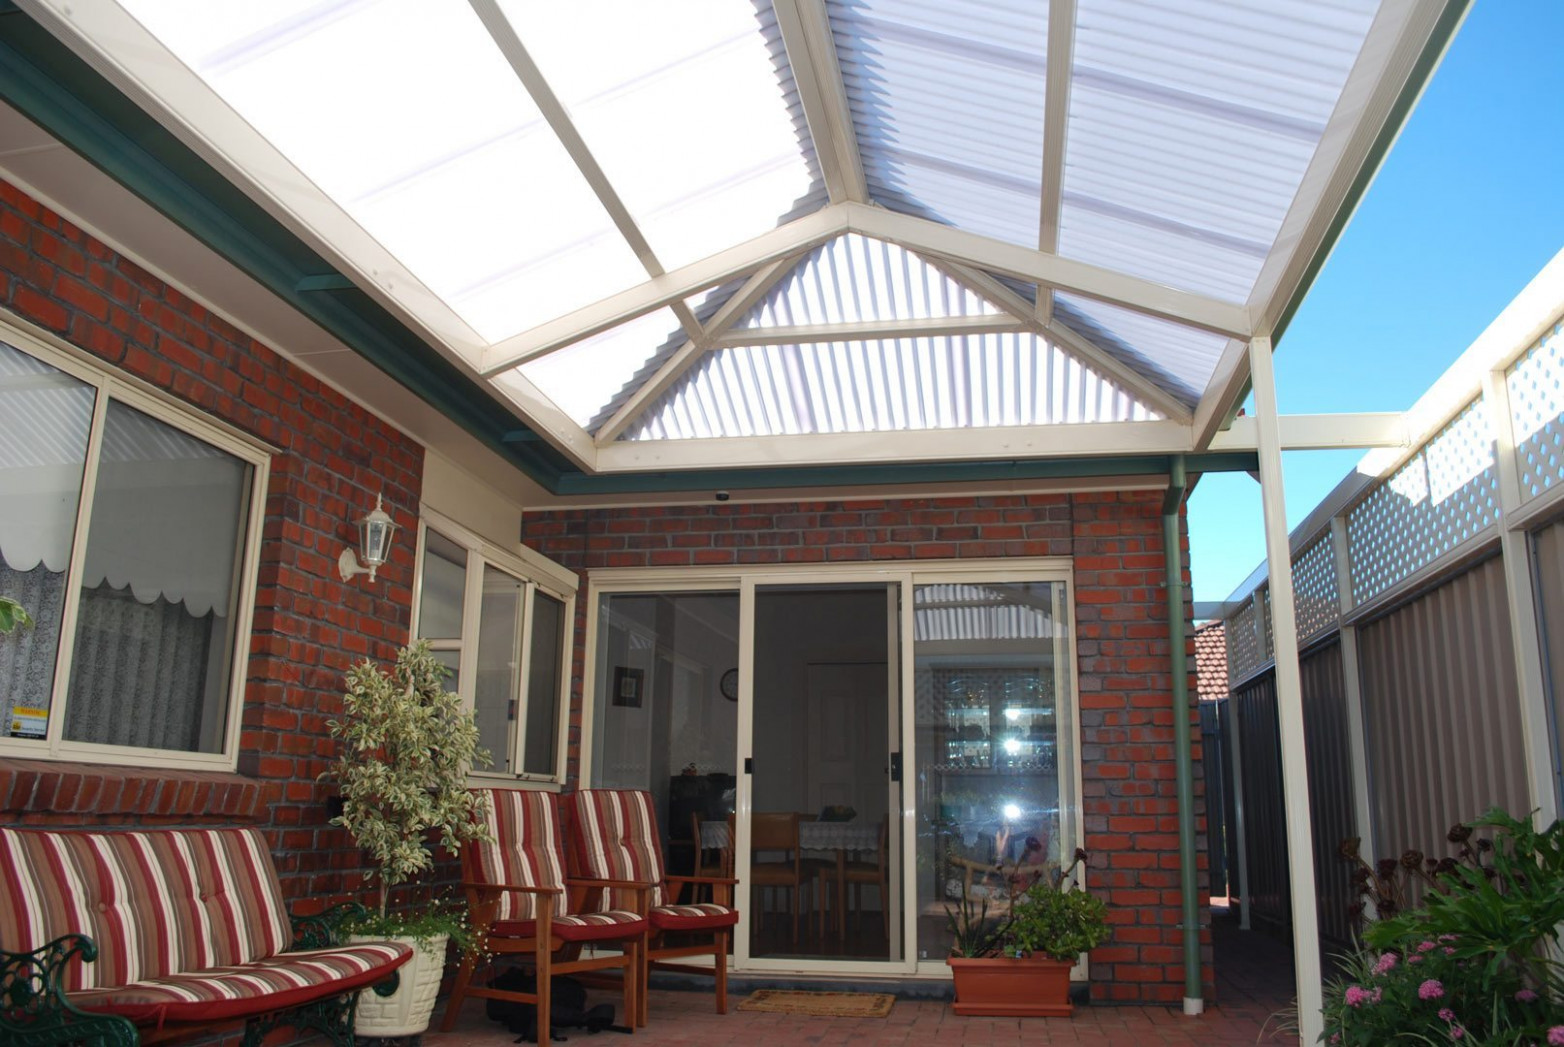 HIP ROOF Carport And Verandah Wholesalers Hip Roof Carport Brisbane